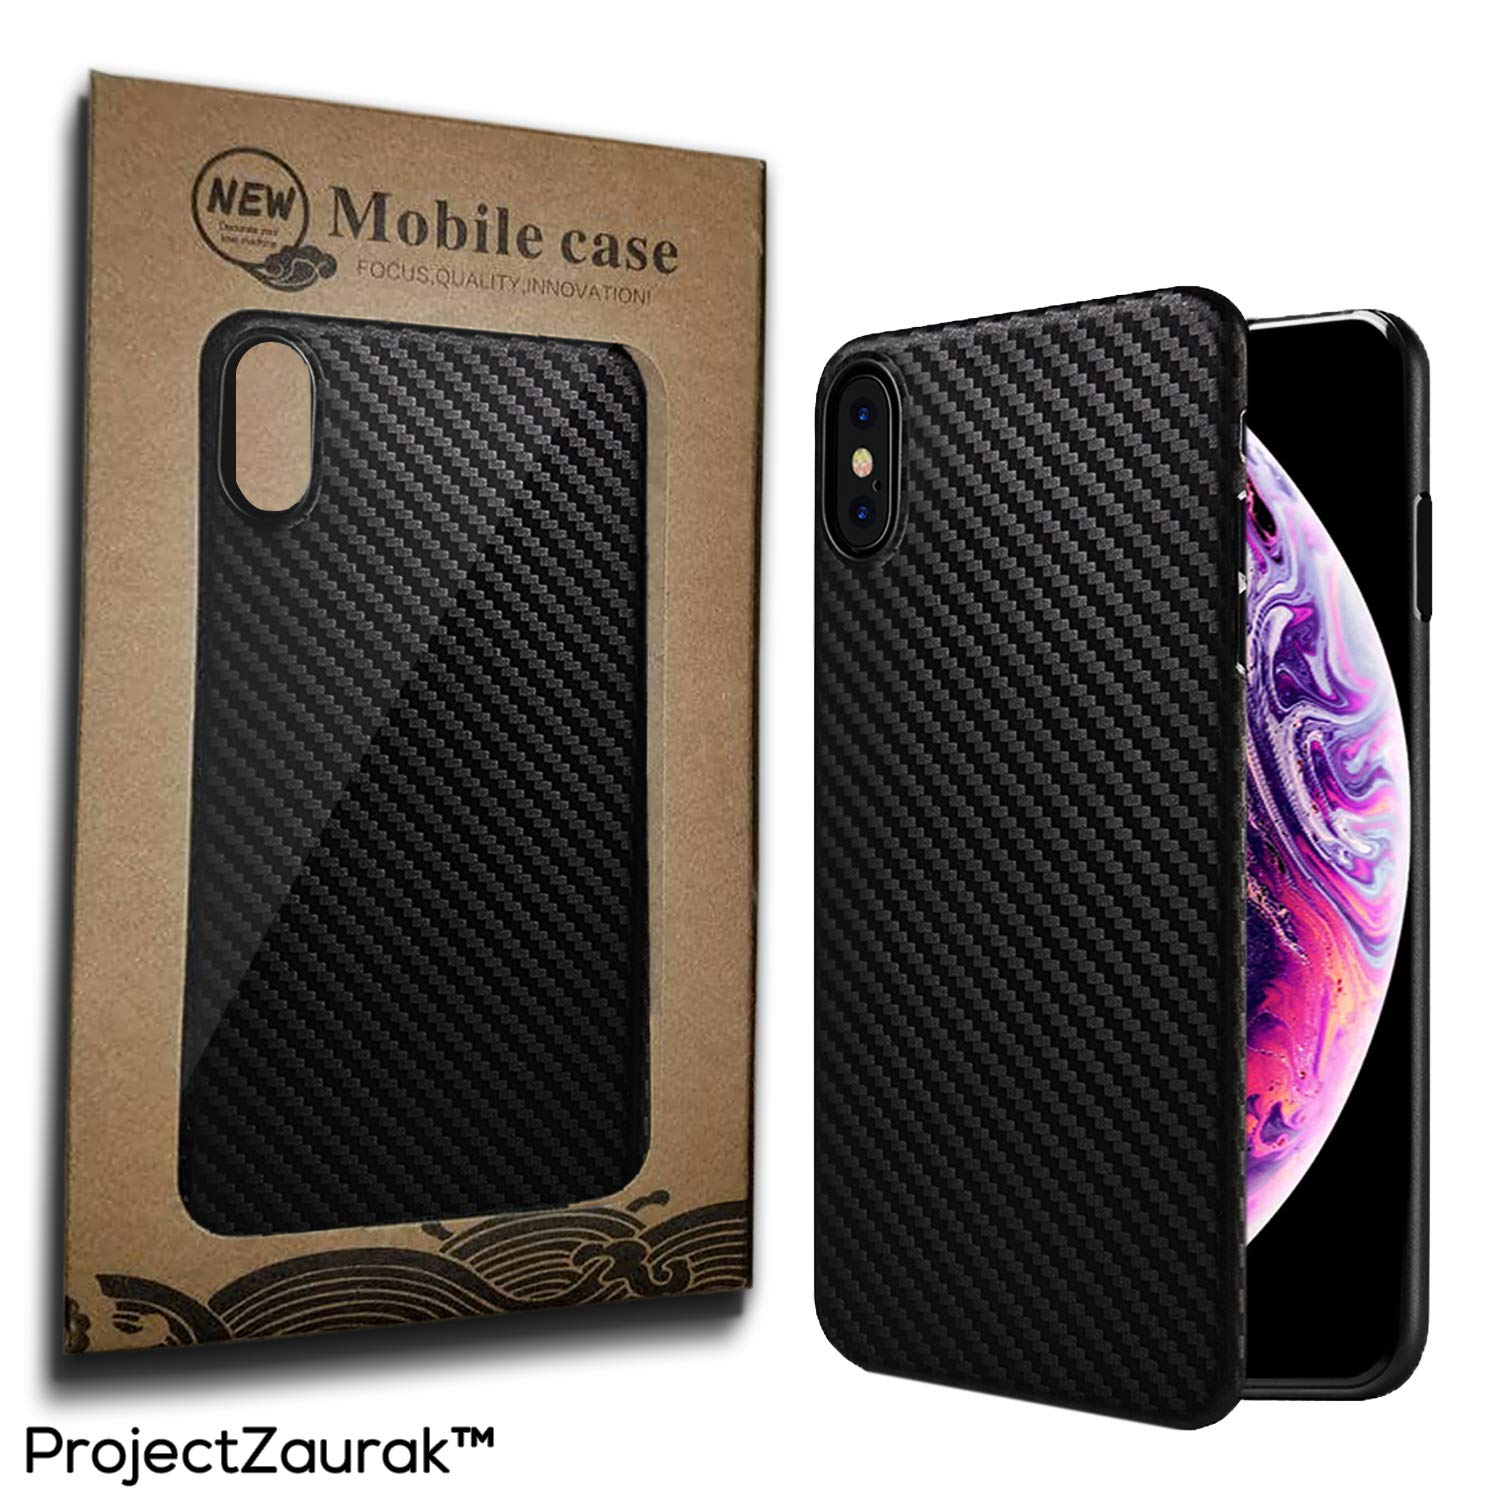 reputable site 16855 b704b Carbon Fiber Case For iPhone X and XS by Project Zaurak - Ultra Thin Slim  Case Cover For Apple 5.8